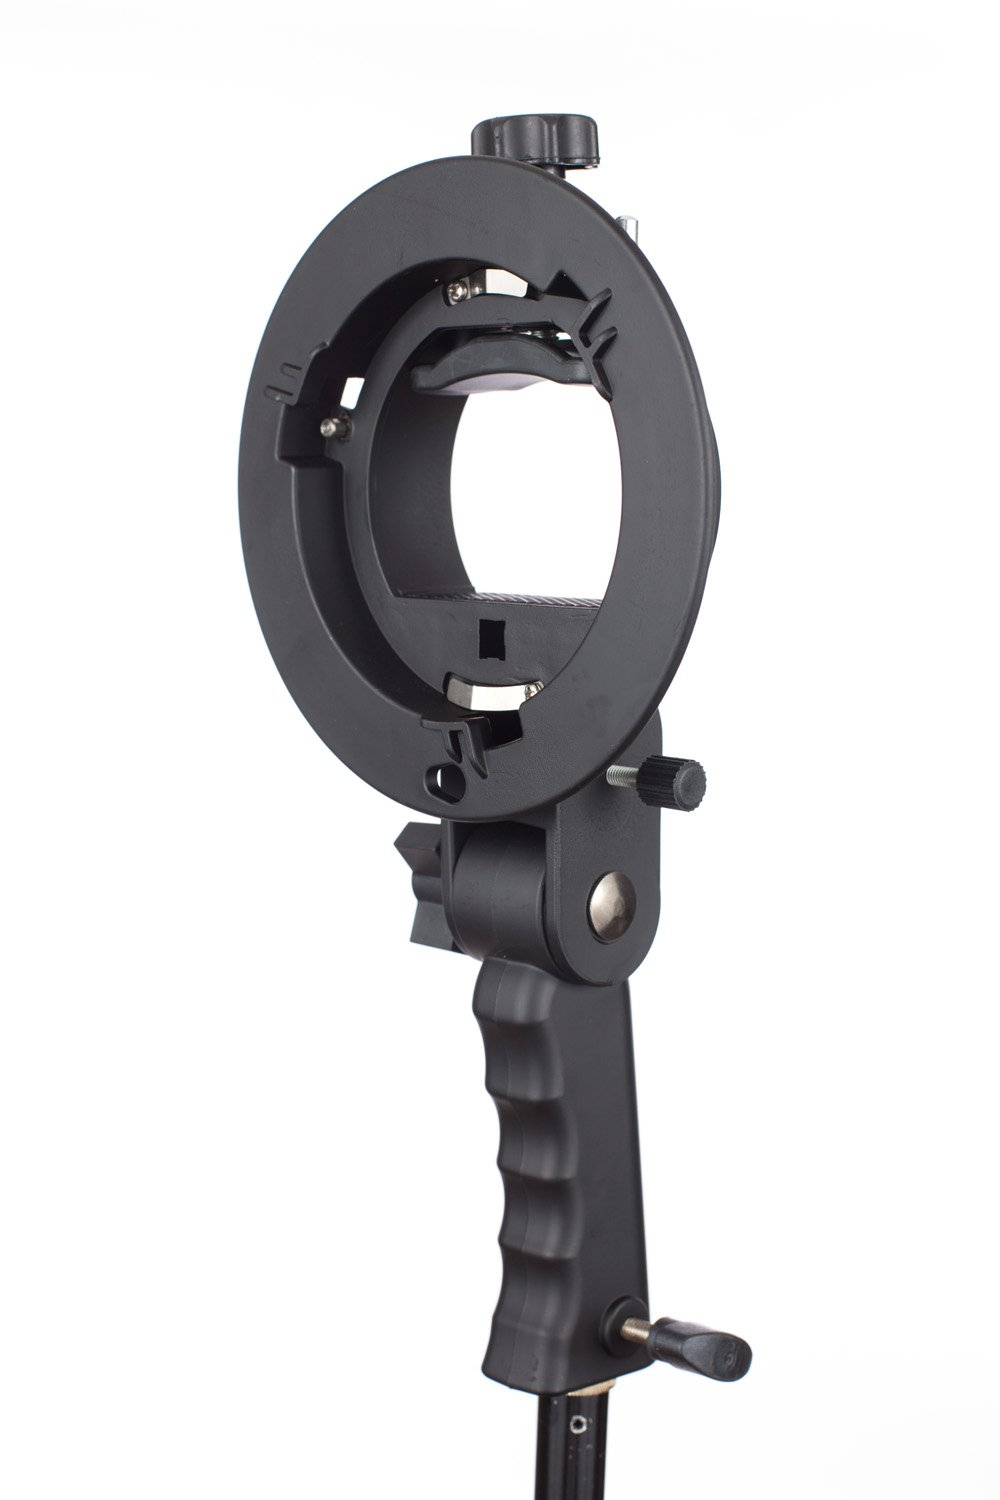 Fovitec [StudioPRO] - [S-Type] Bracket Bowens S Mount for Speedlight Modifer